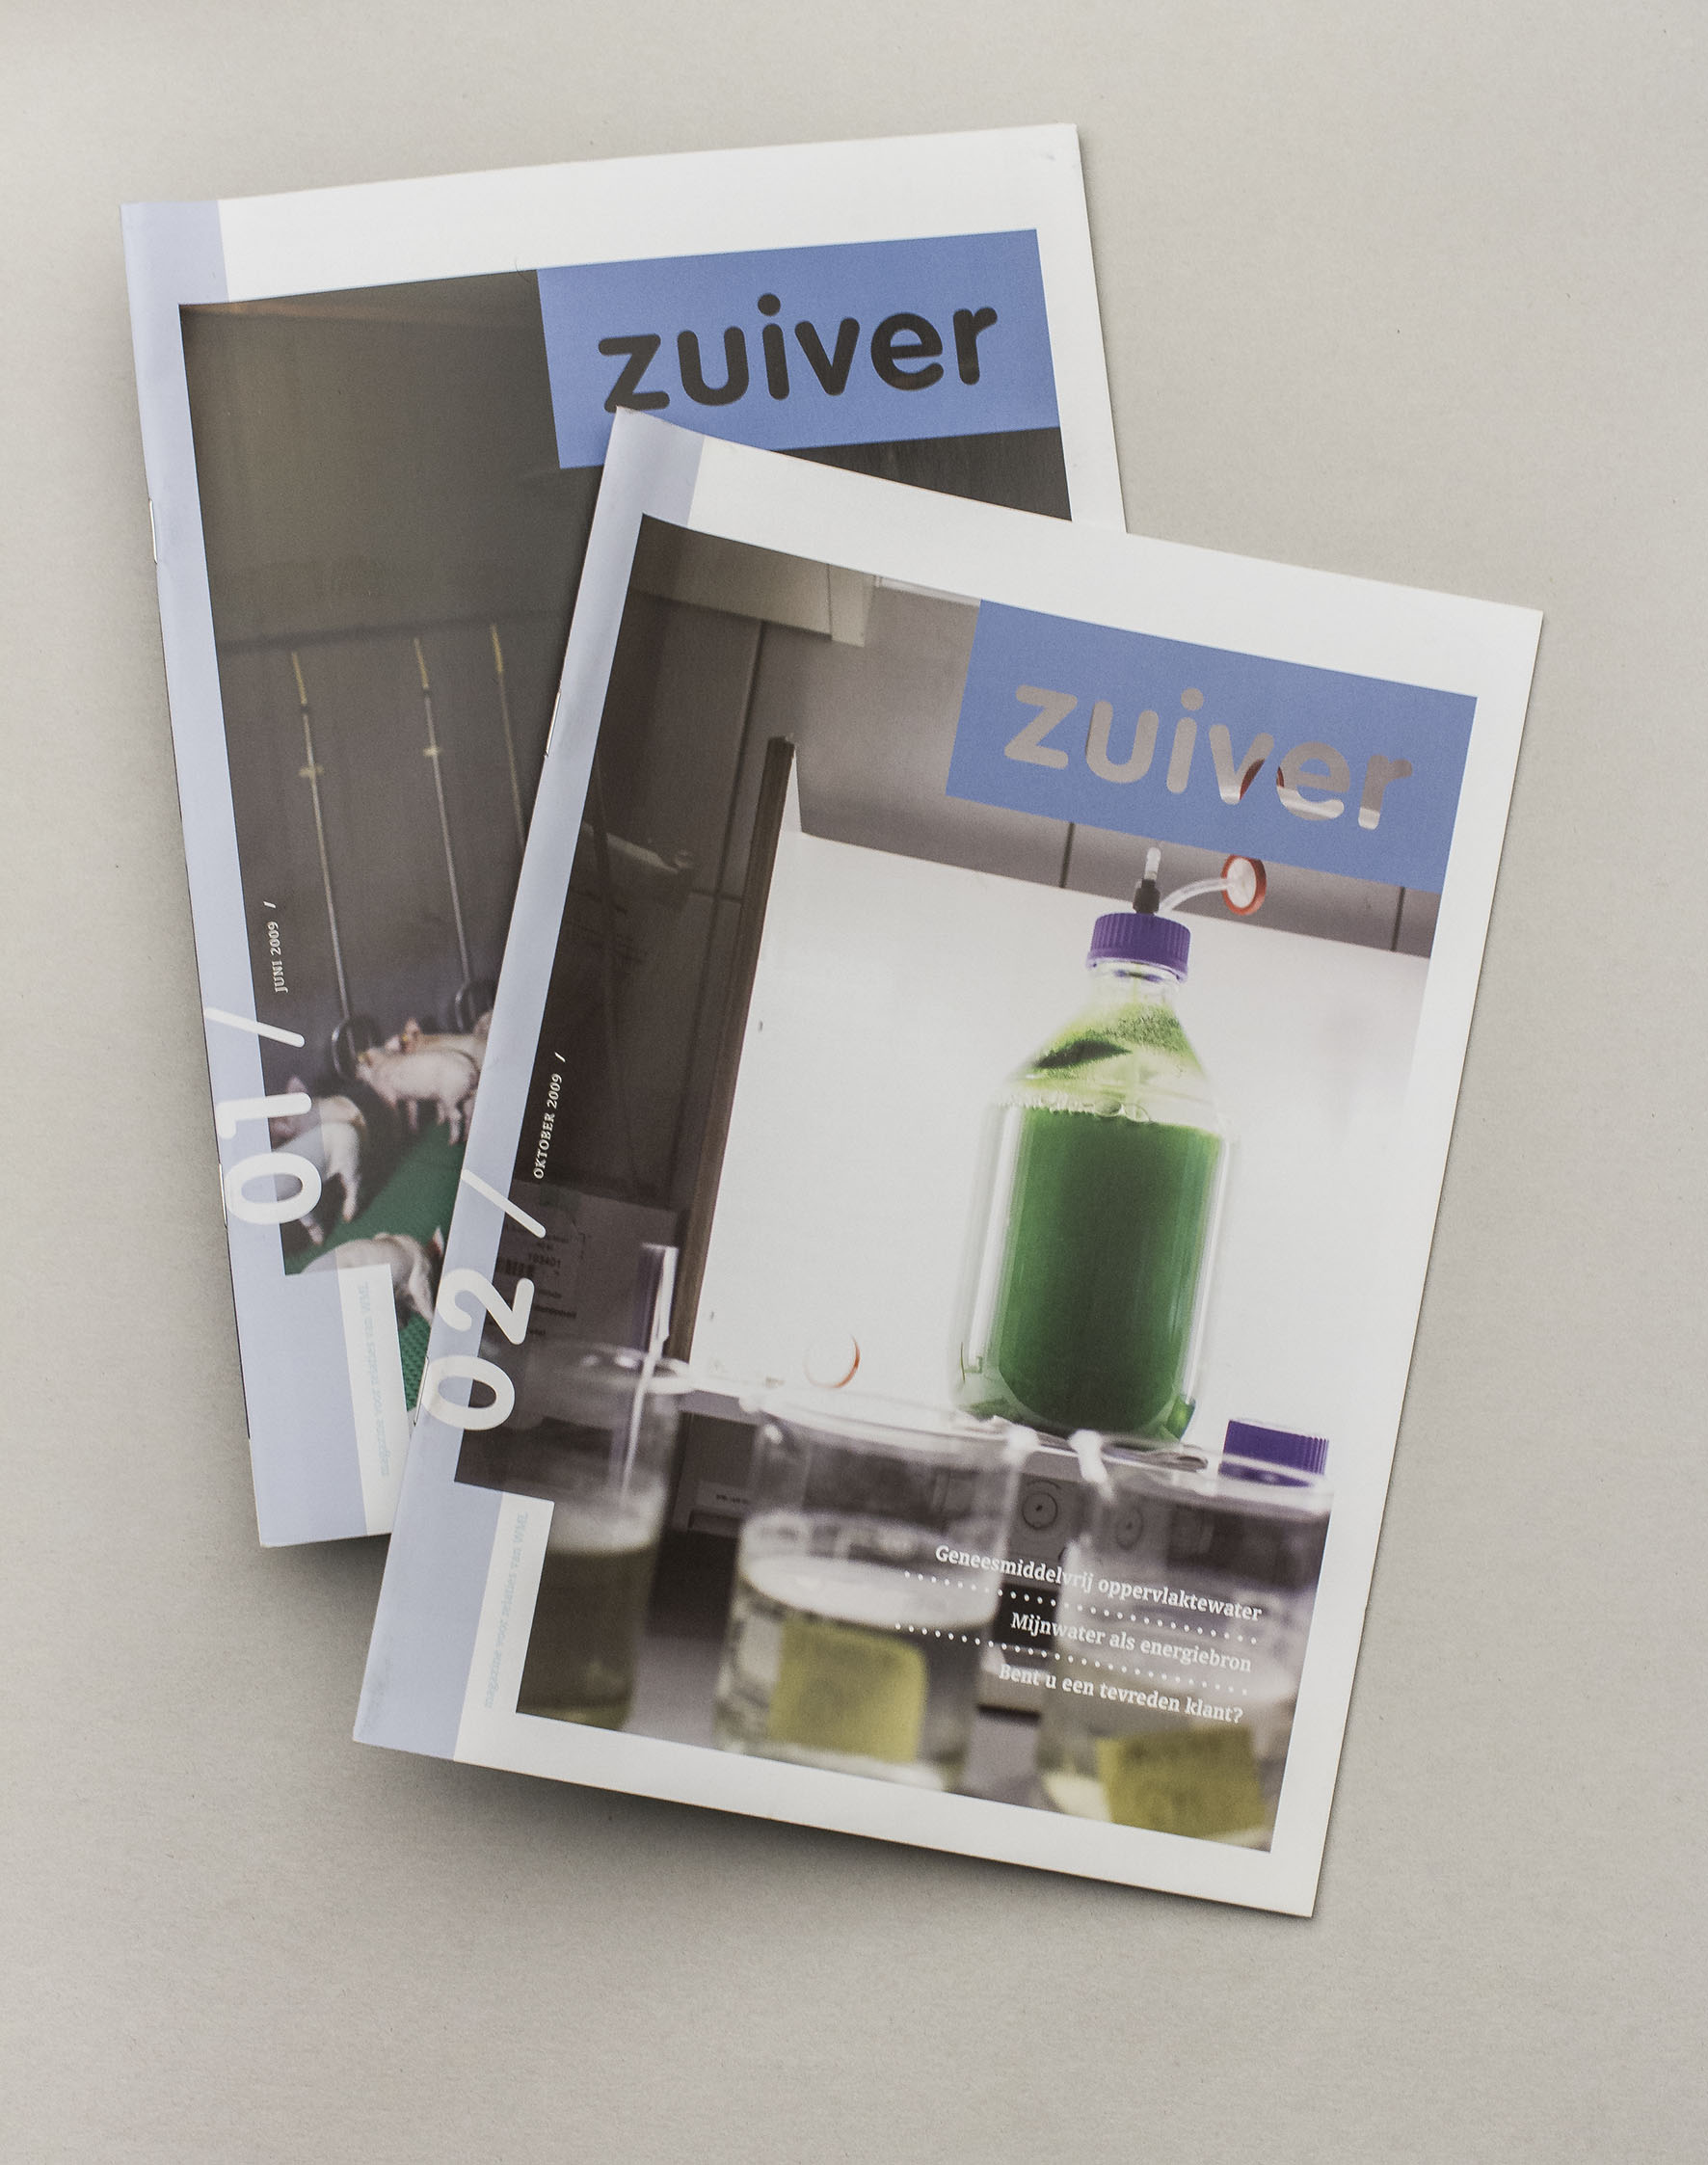 ZUIVER IMG_5875